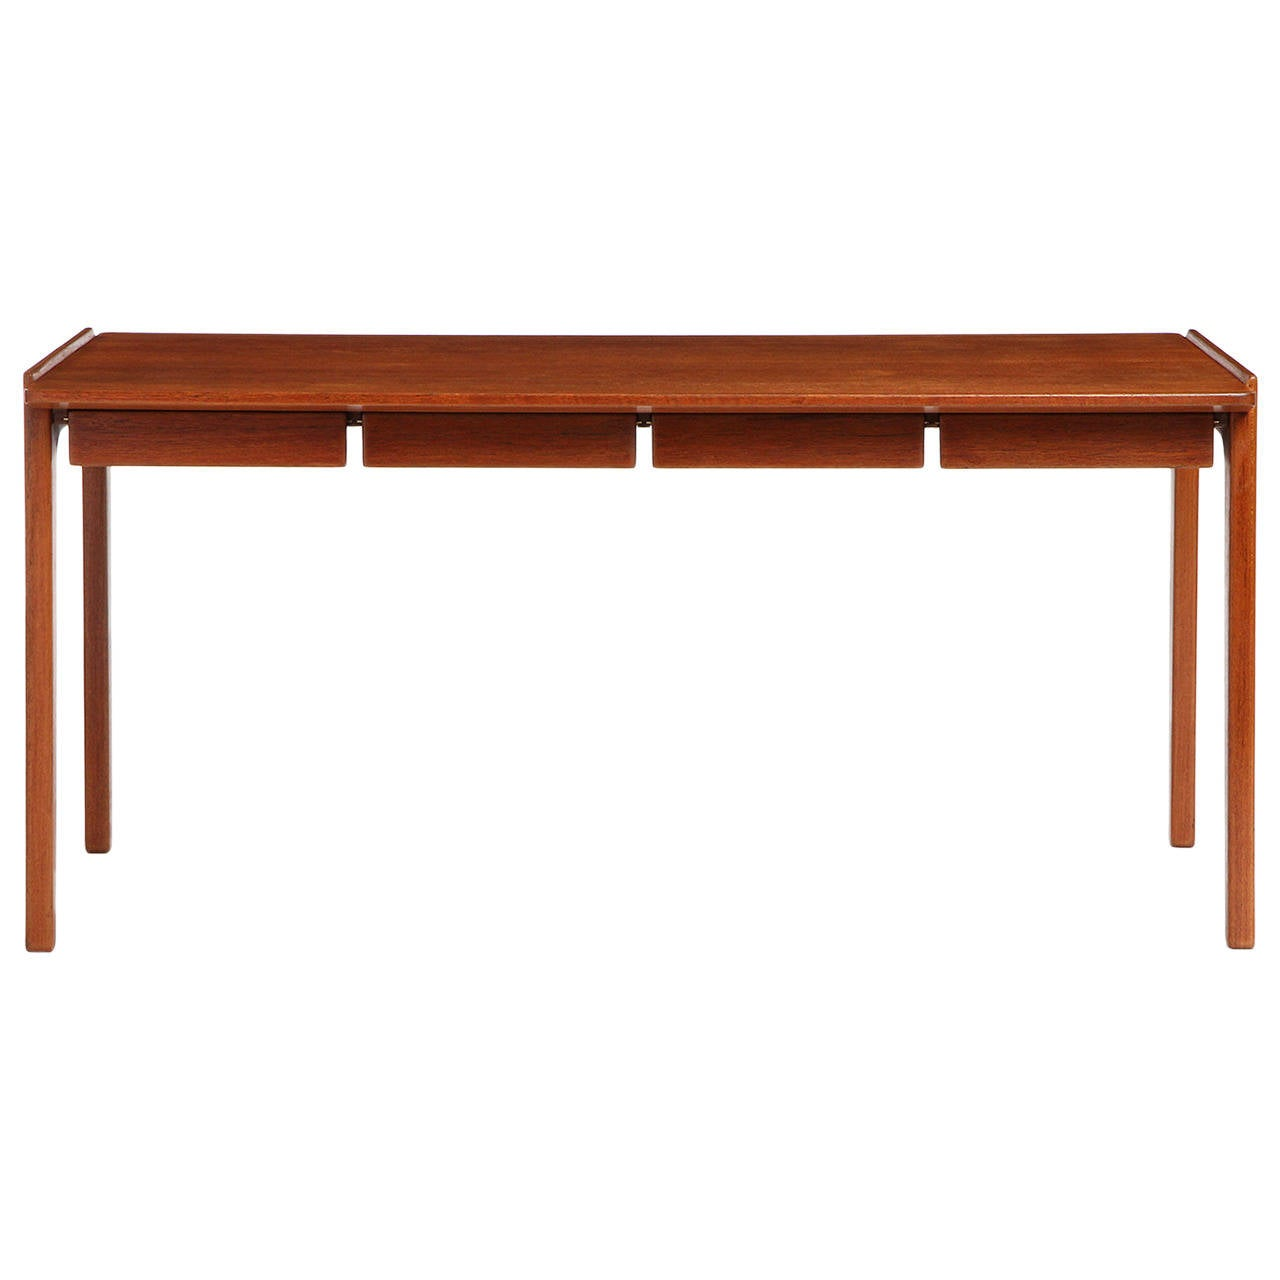 Teak Writing Desk by Tove & Edvard Kindt-Larsen For Sale